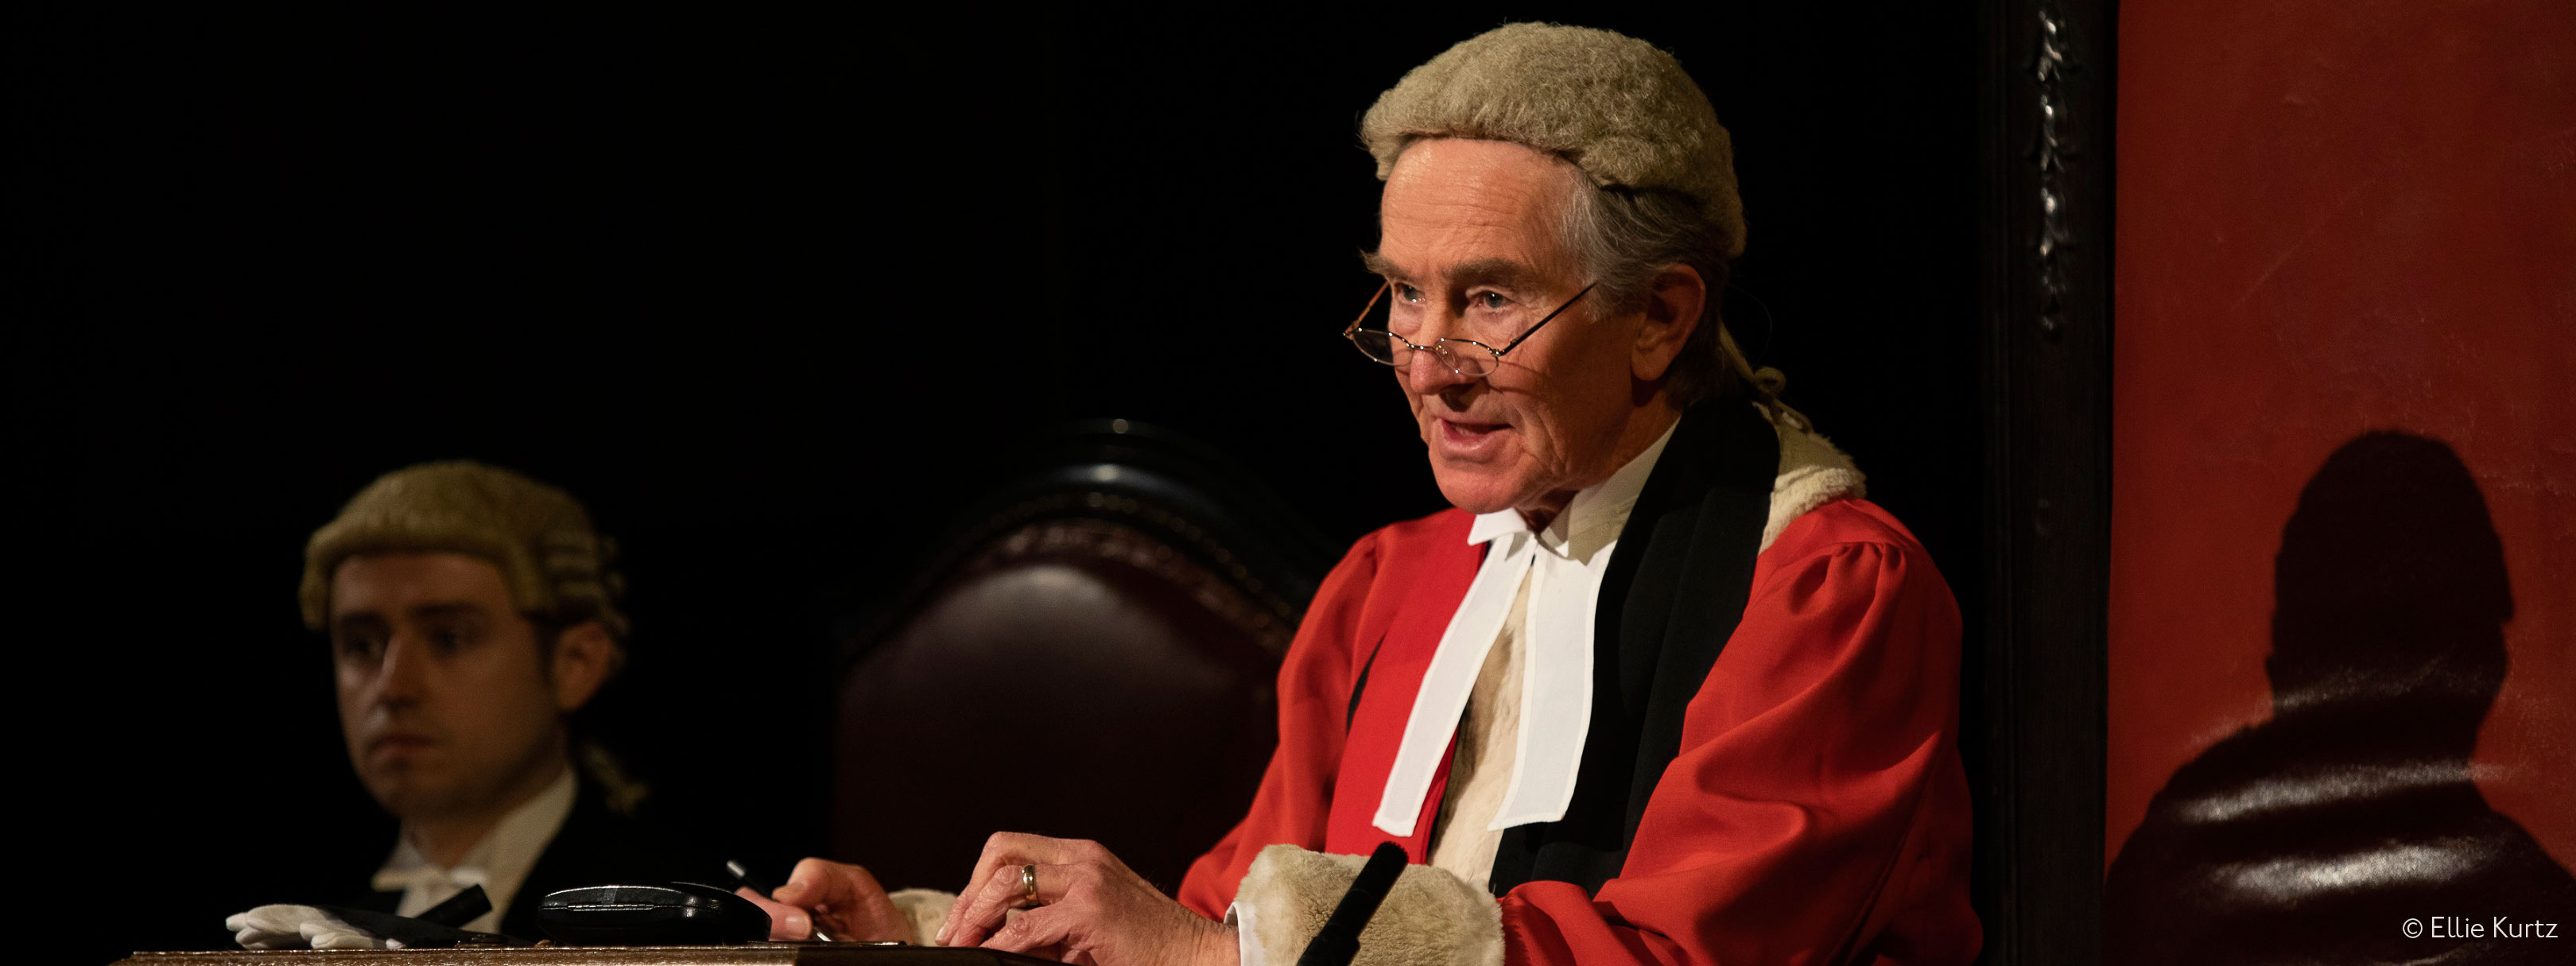 Barister questions a witness in a courtroom theatre show